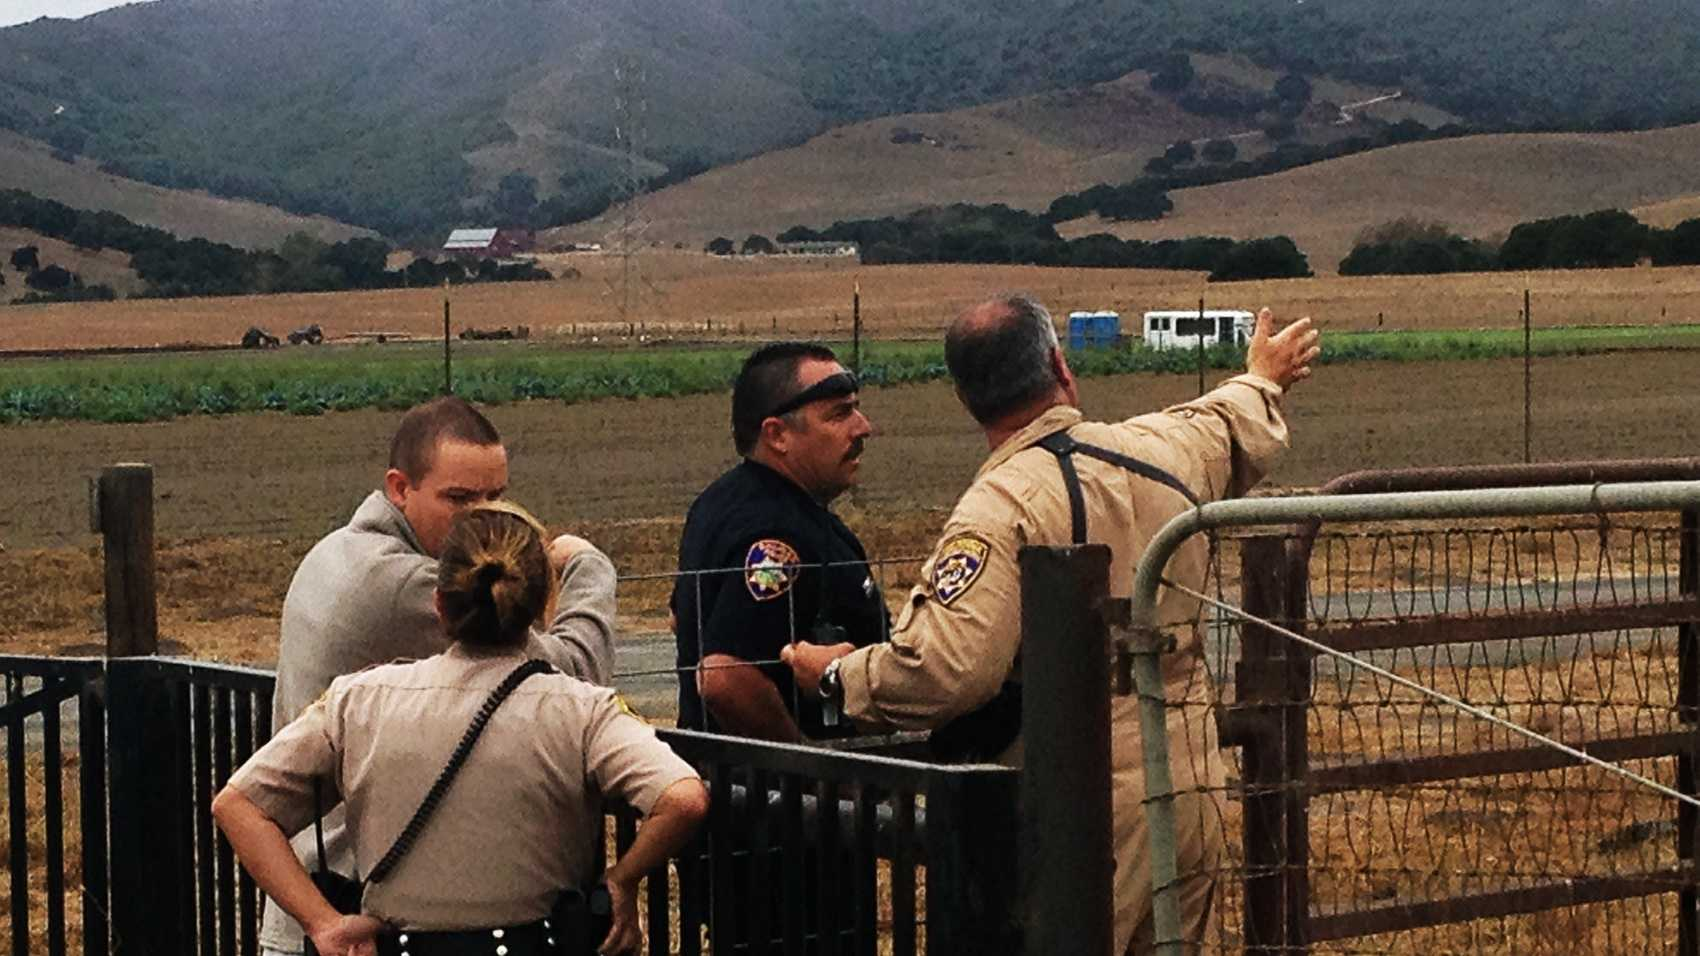 A manhunt happened Tuesday in the hills east of Chualar. (Aug. 19, 2014)